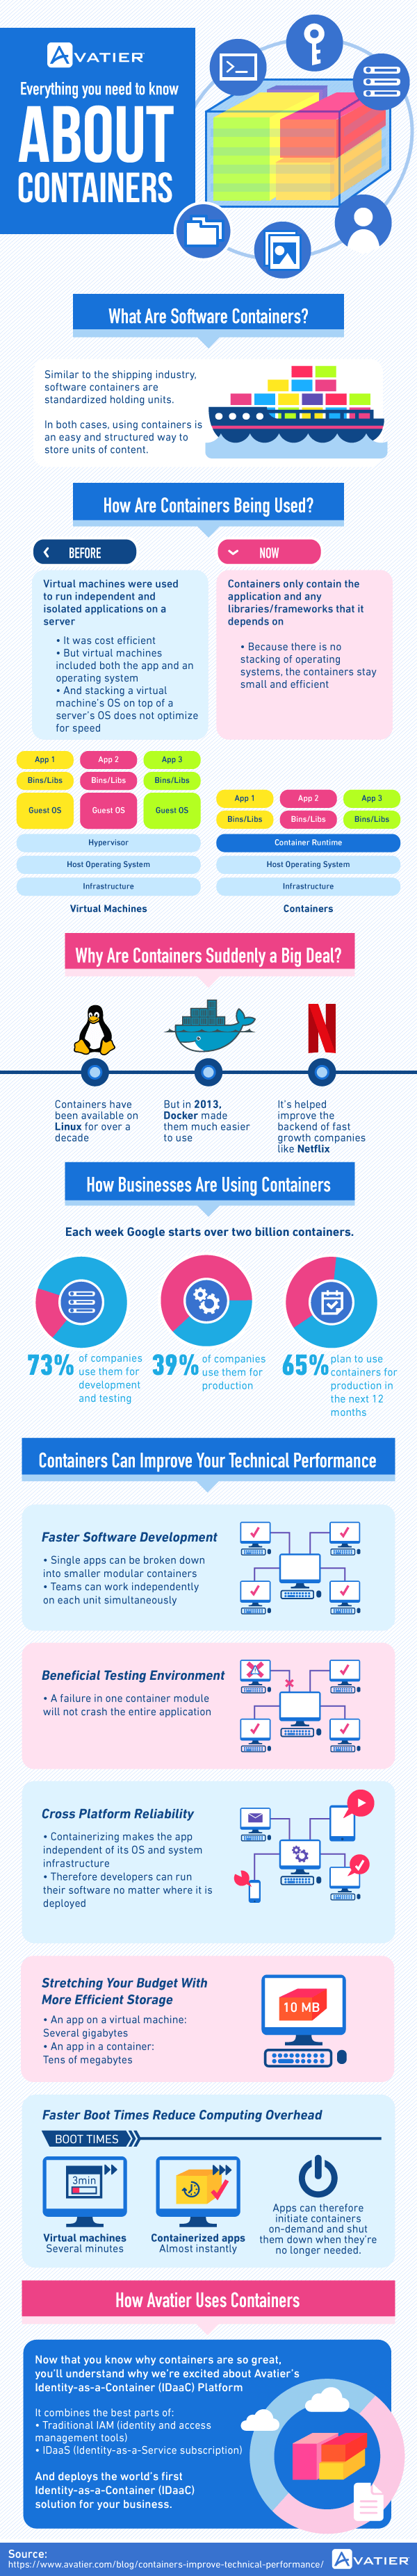 Improve Business Performance Infographic